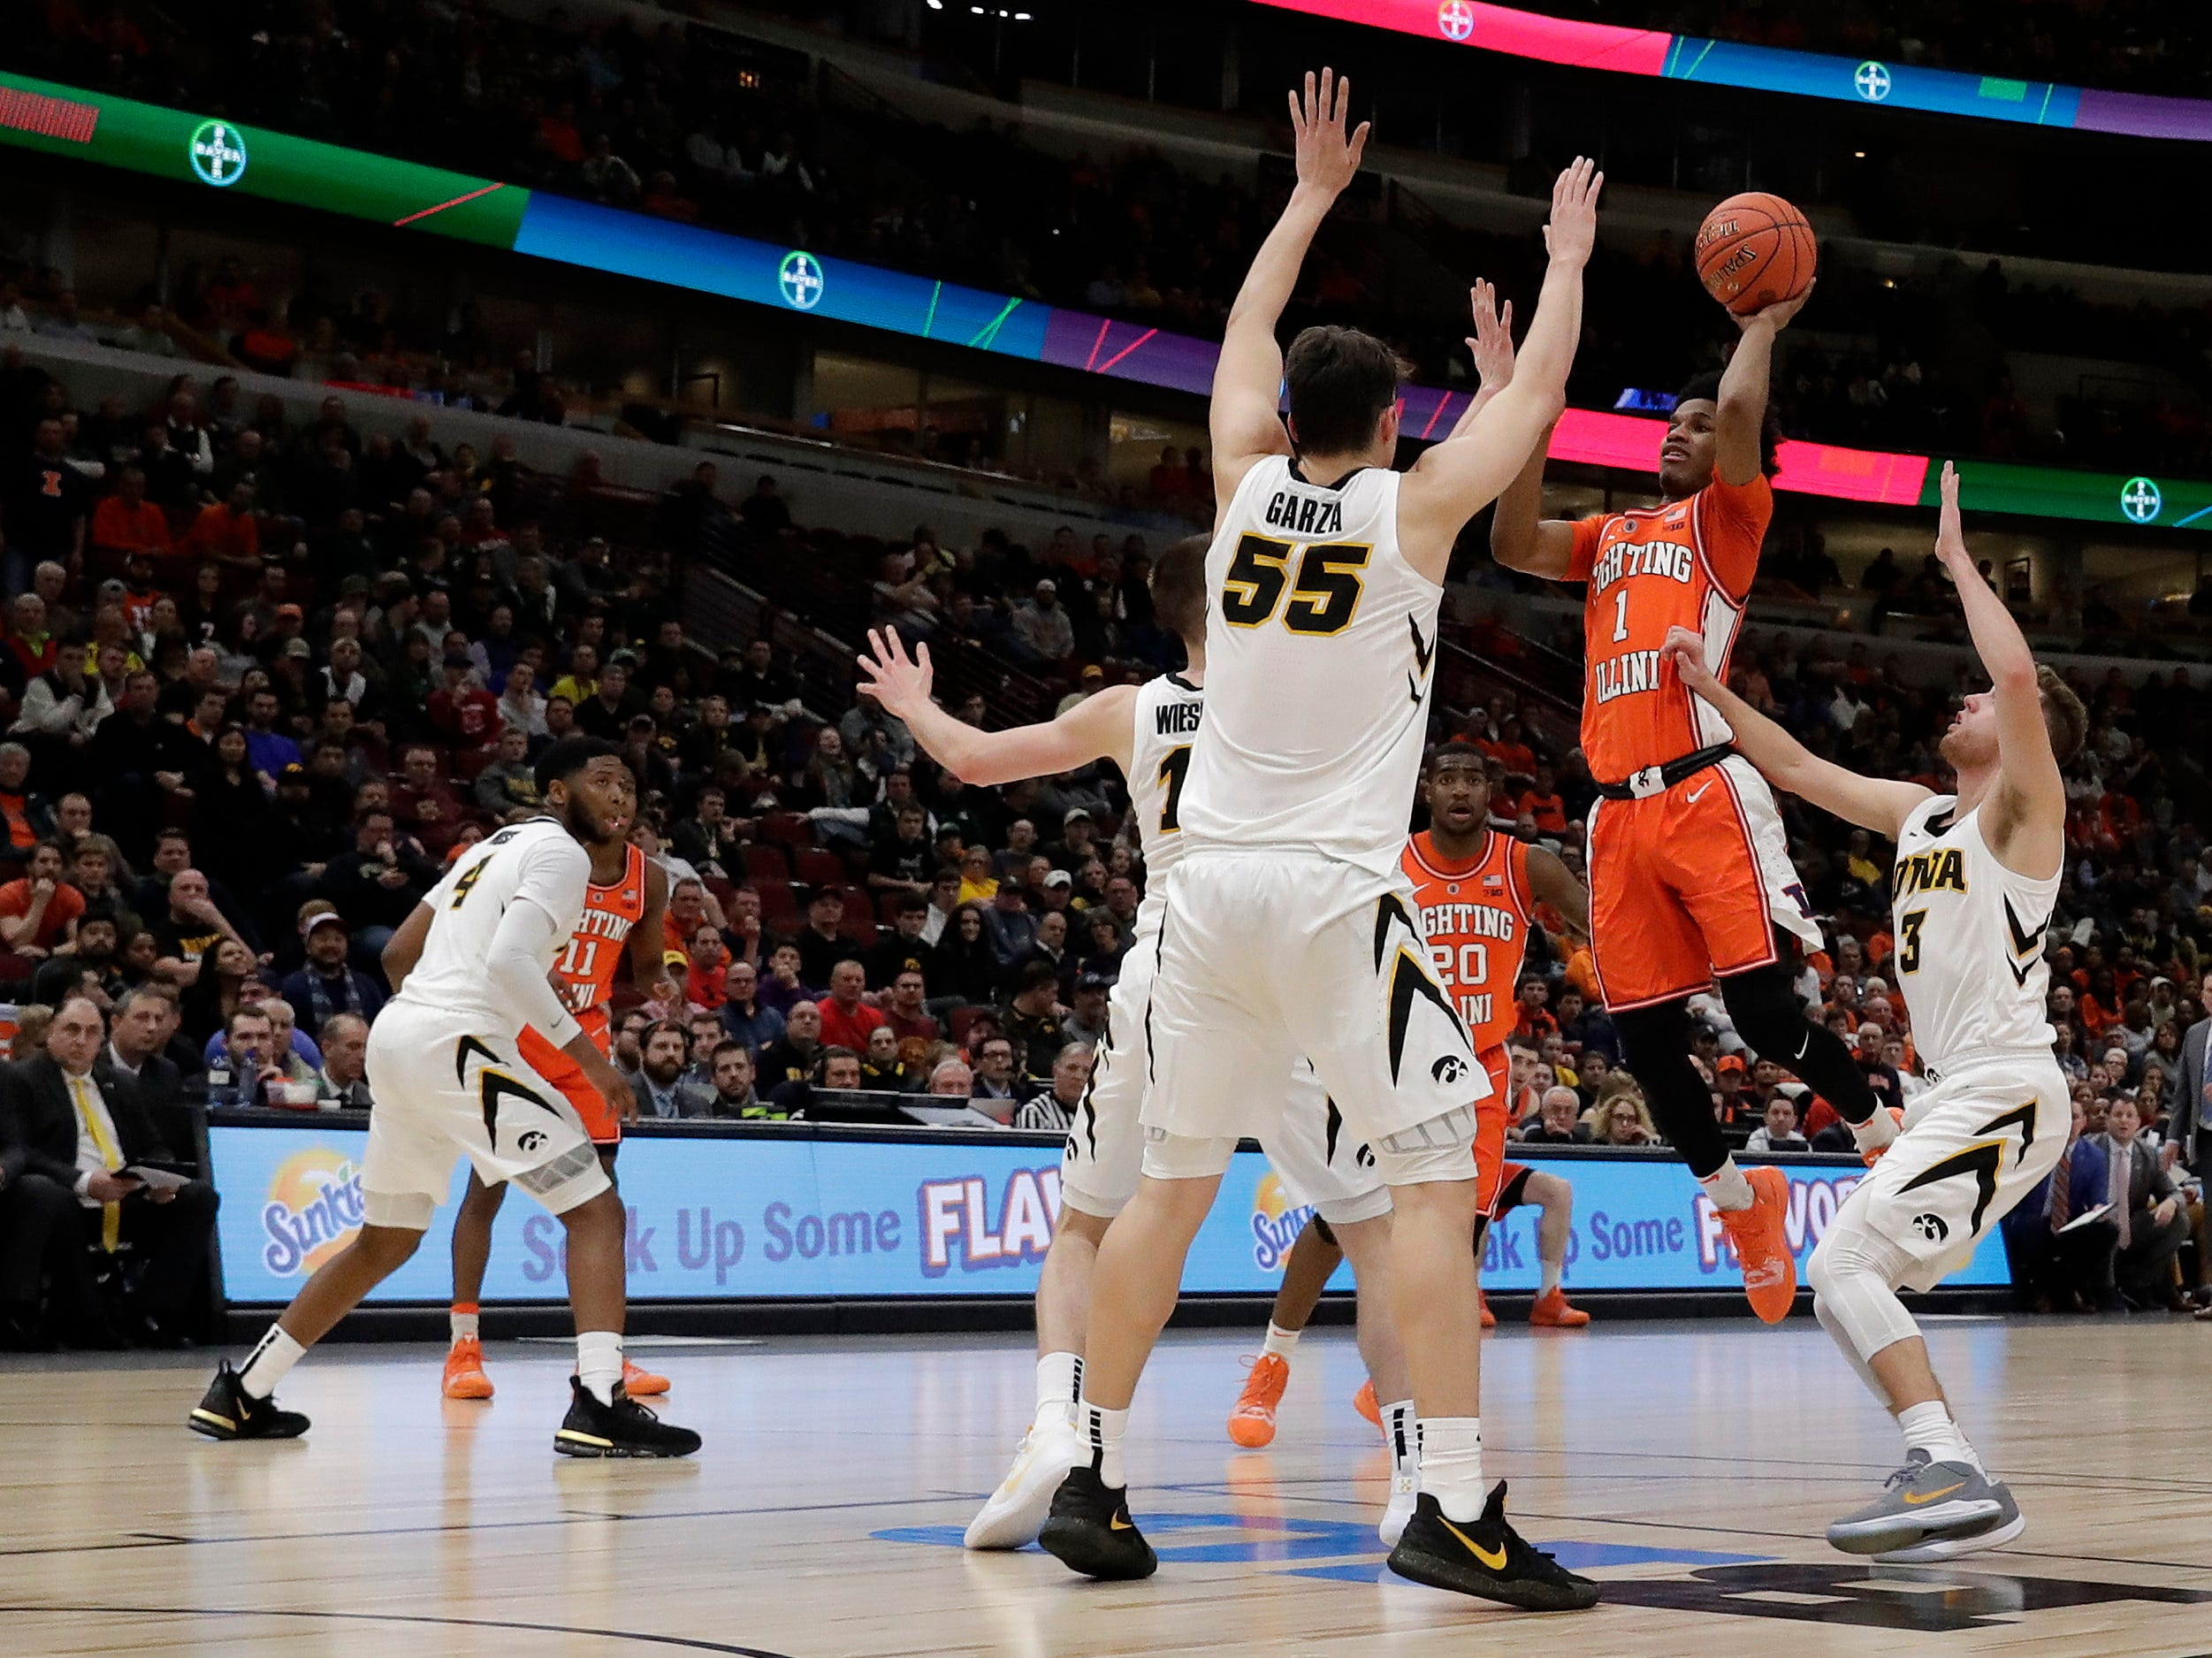 Illinois's Trent Frazier (1) takes a shot against the Iowa defense during the first half of an NCAA college basketball game in the second round of the Big Ten Conference tournament, Thursday, March 14, 2019, in Chicago. (AP Photo/Nam Y. Huh)